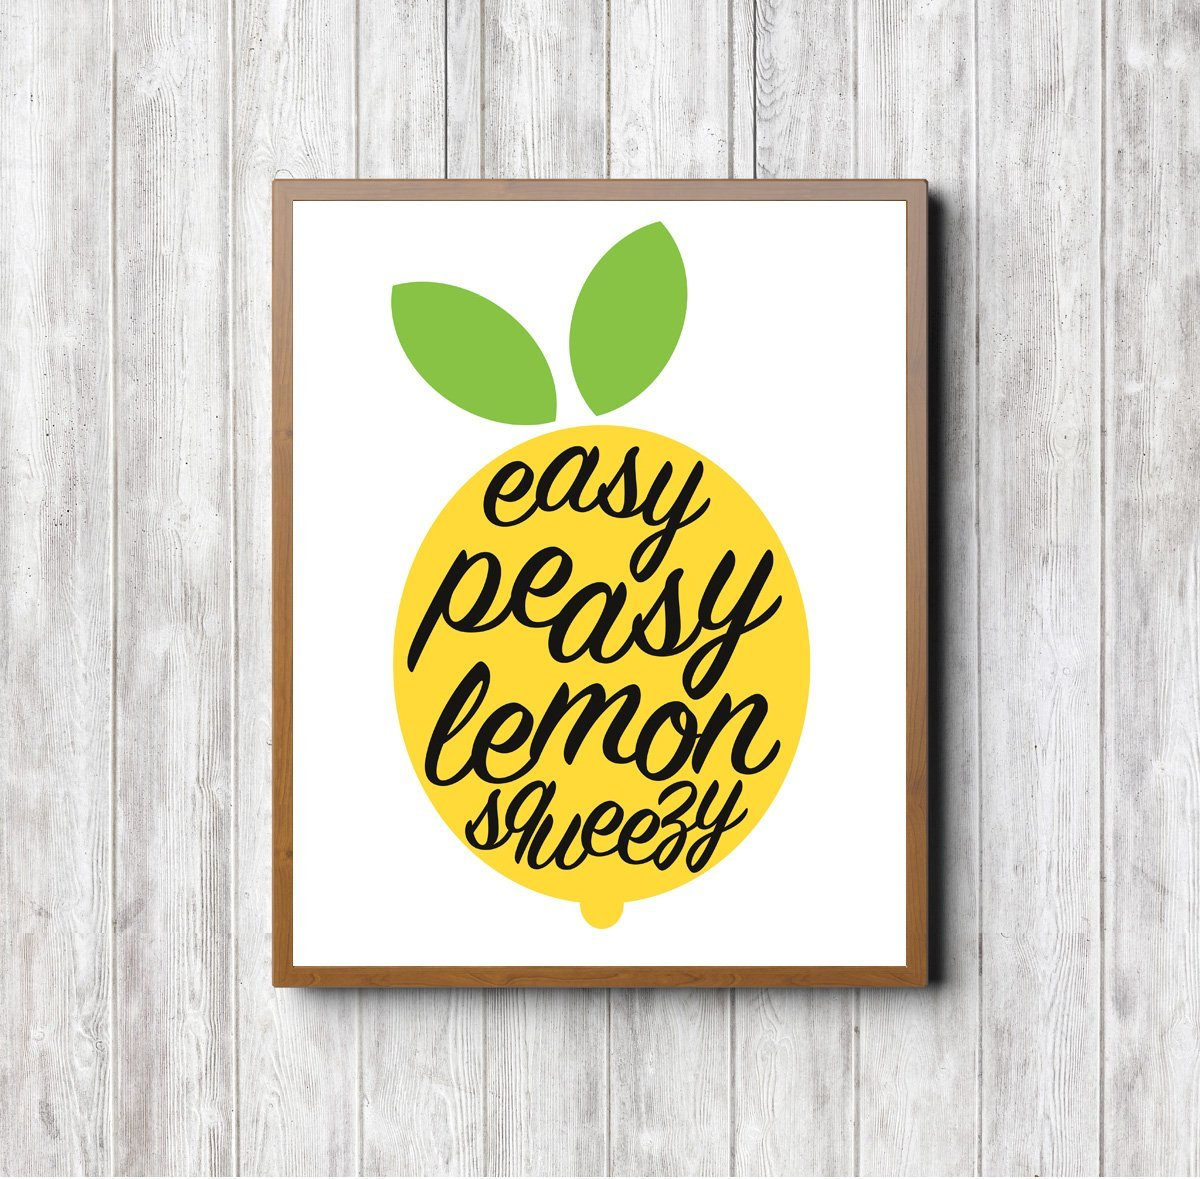 'Easy Peasy Lemon Squeezy' Print. Stylish home, work and kitchen decor, wall art, lemon art, lemon print